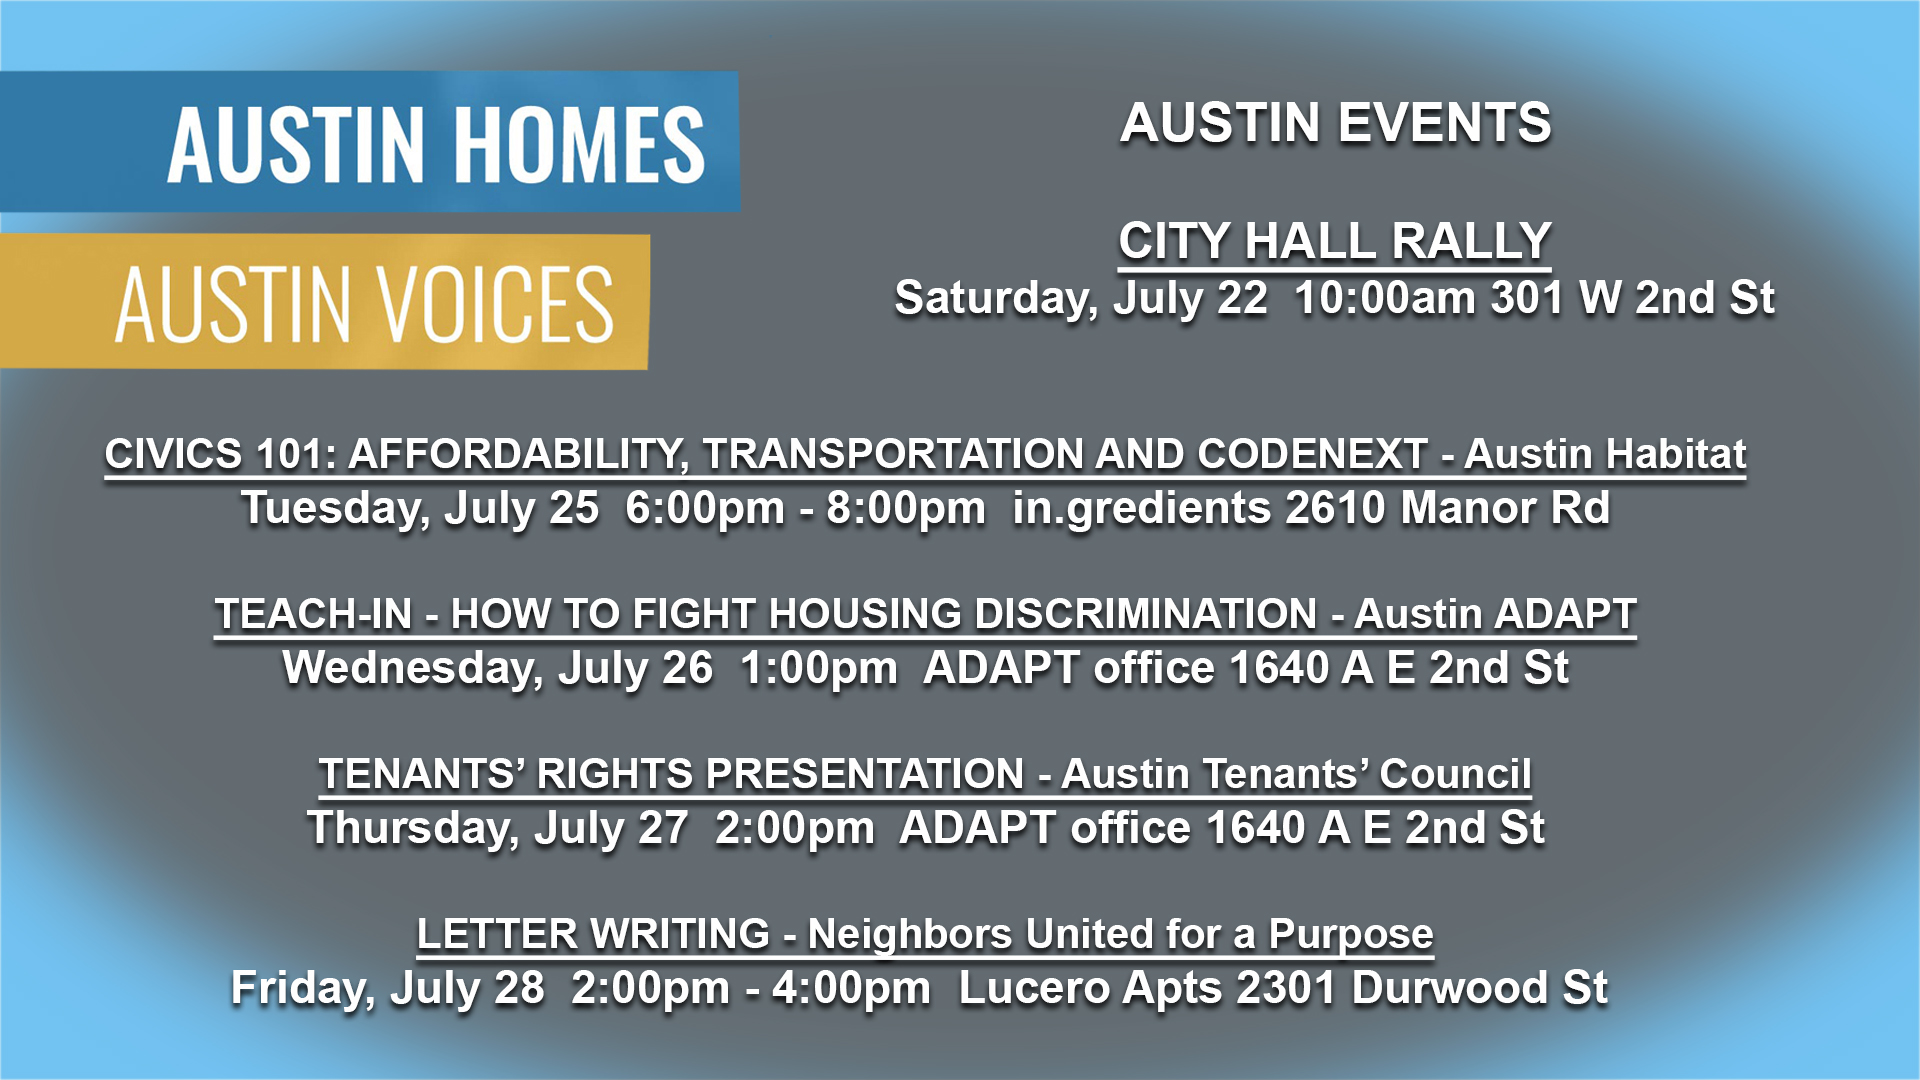 Austin Homes  Austin Voices Austin Events City Hall Rally Saturday,  July 22 10: